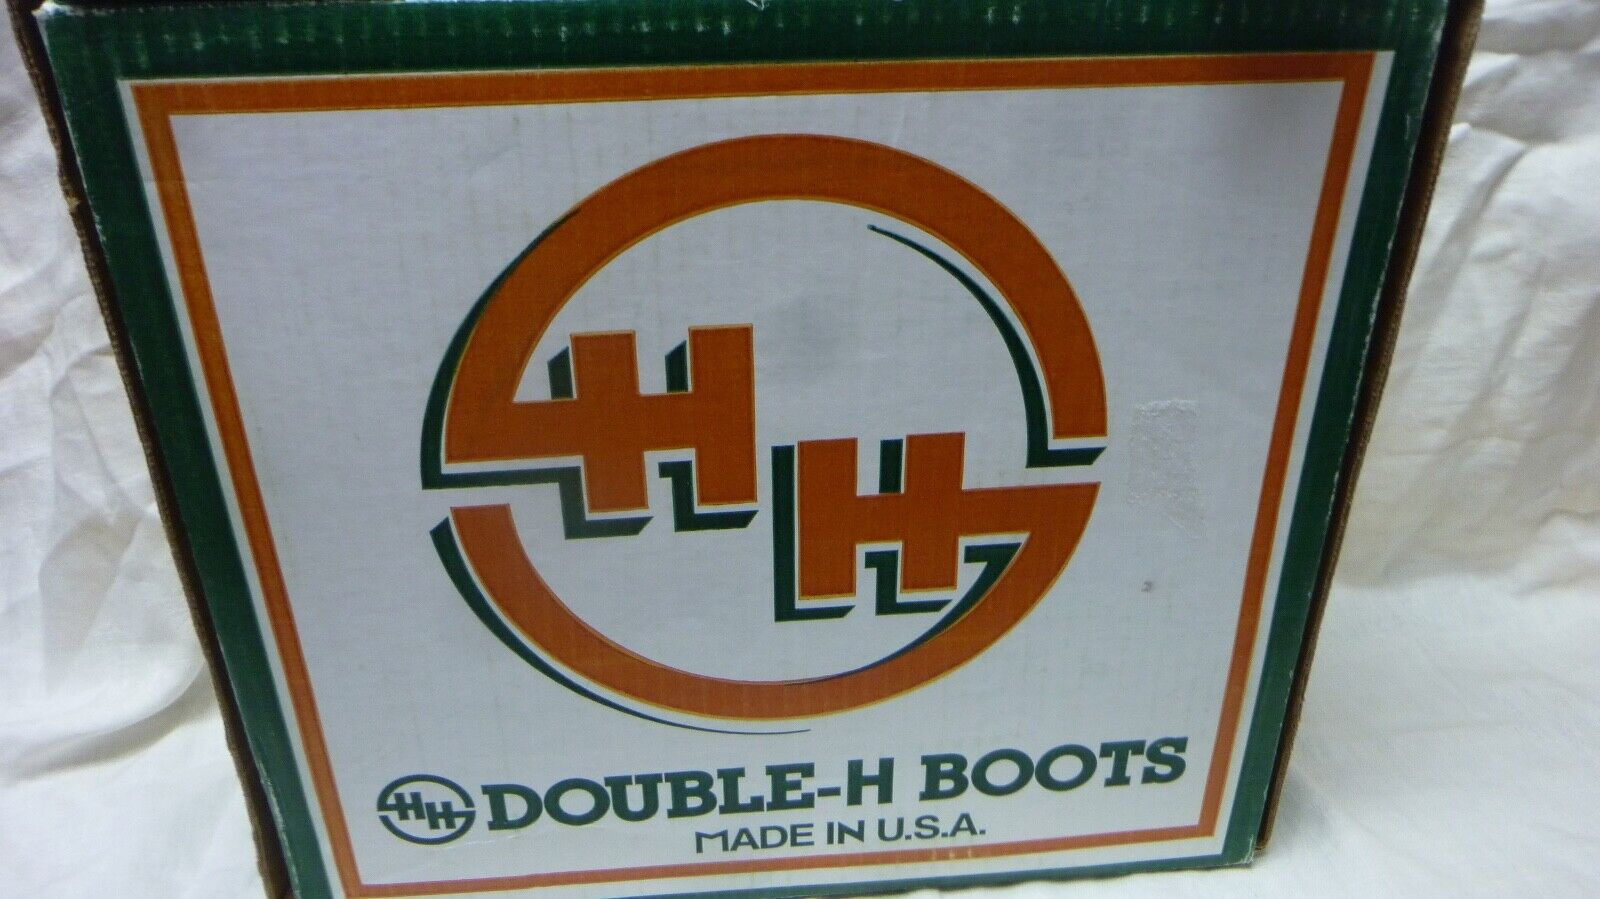 4X4 DOUBLE H BOOT MADE IN USA 10 1 2 D SIZE 5336 IN ORIGINAL BOX